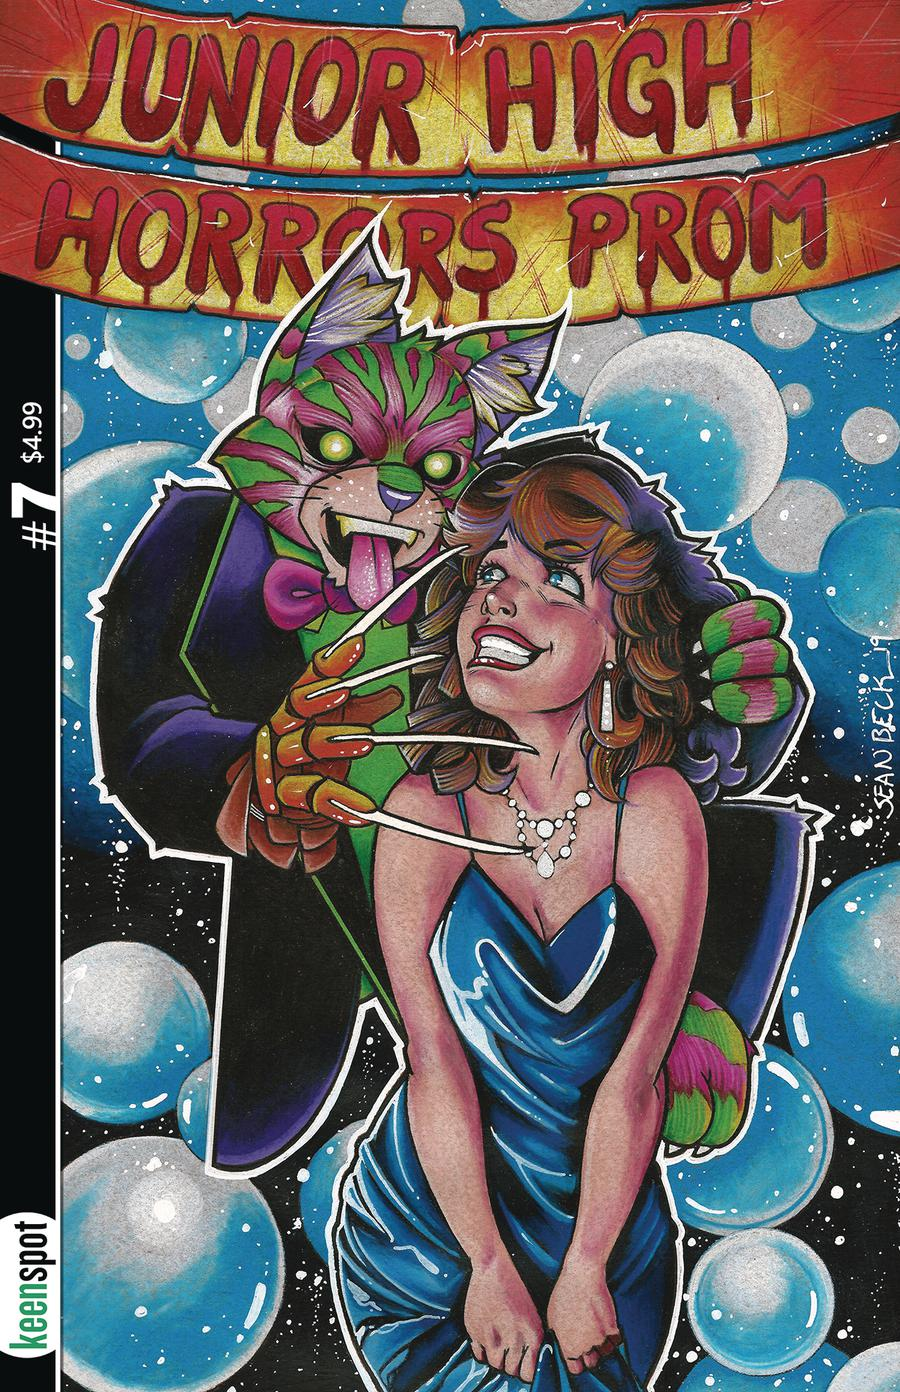 Junior High Horrors #7 Cover C Variant Nightmare On Prom Street Cover